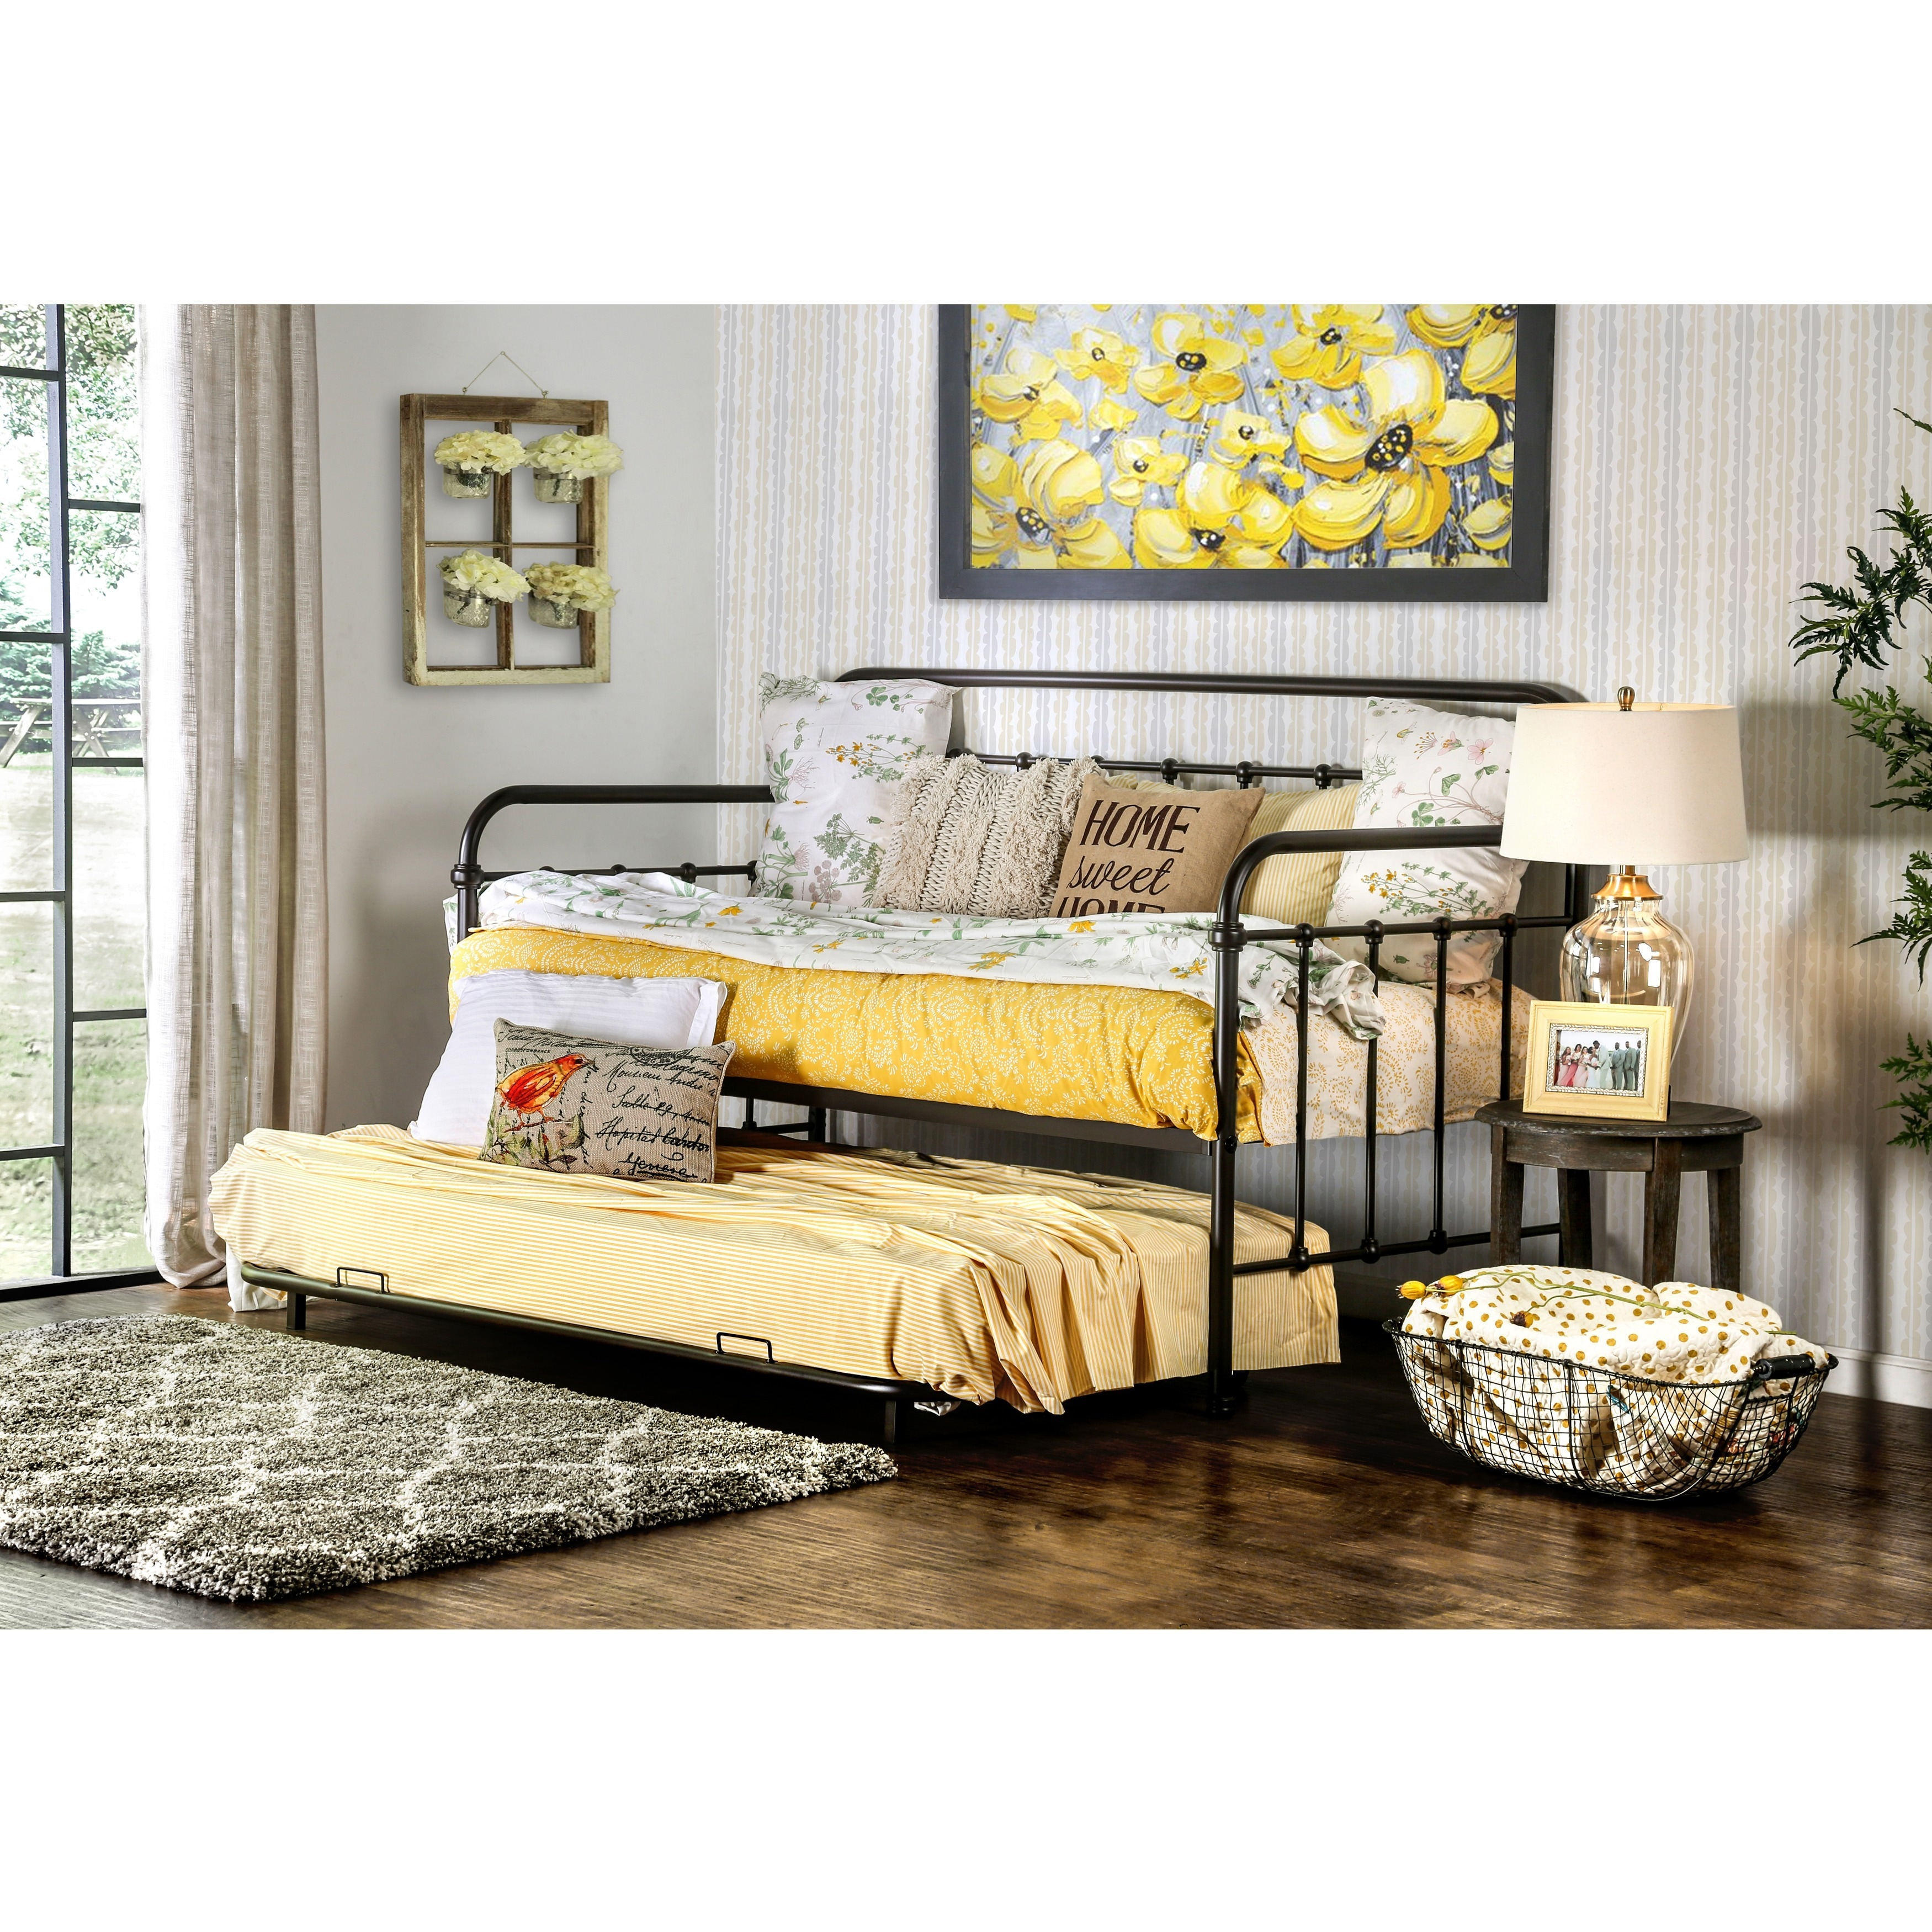 Furniture of America Lissa Modern 2-Piece Metal Daybed wi...